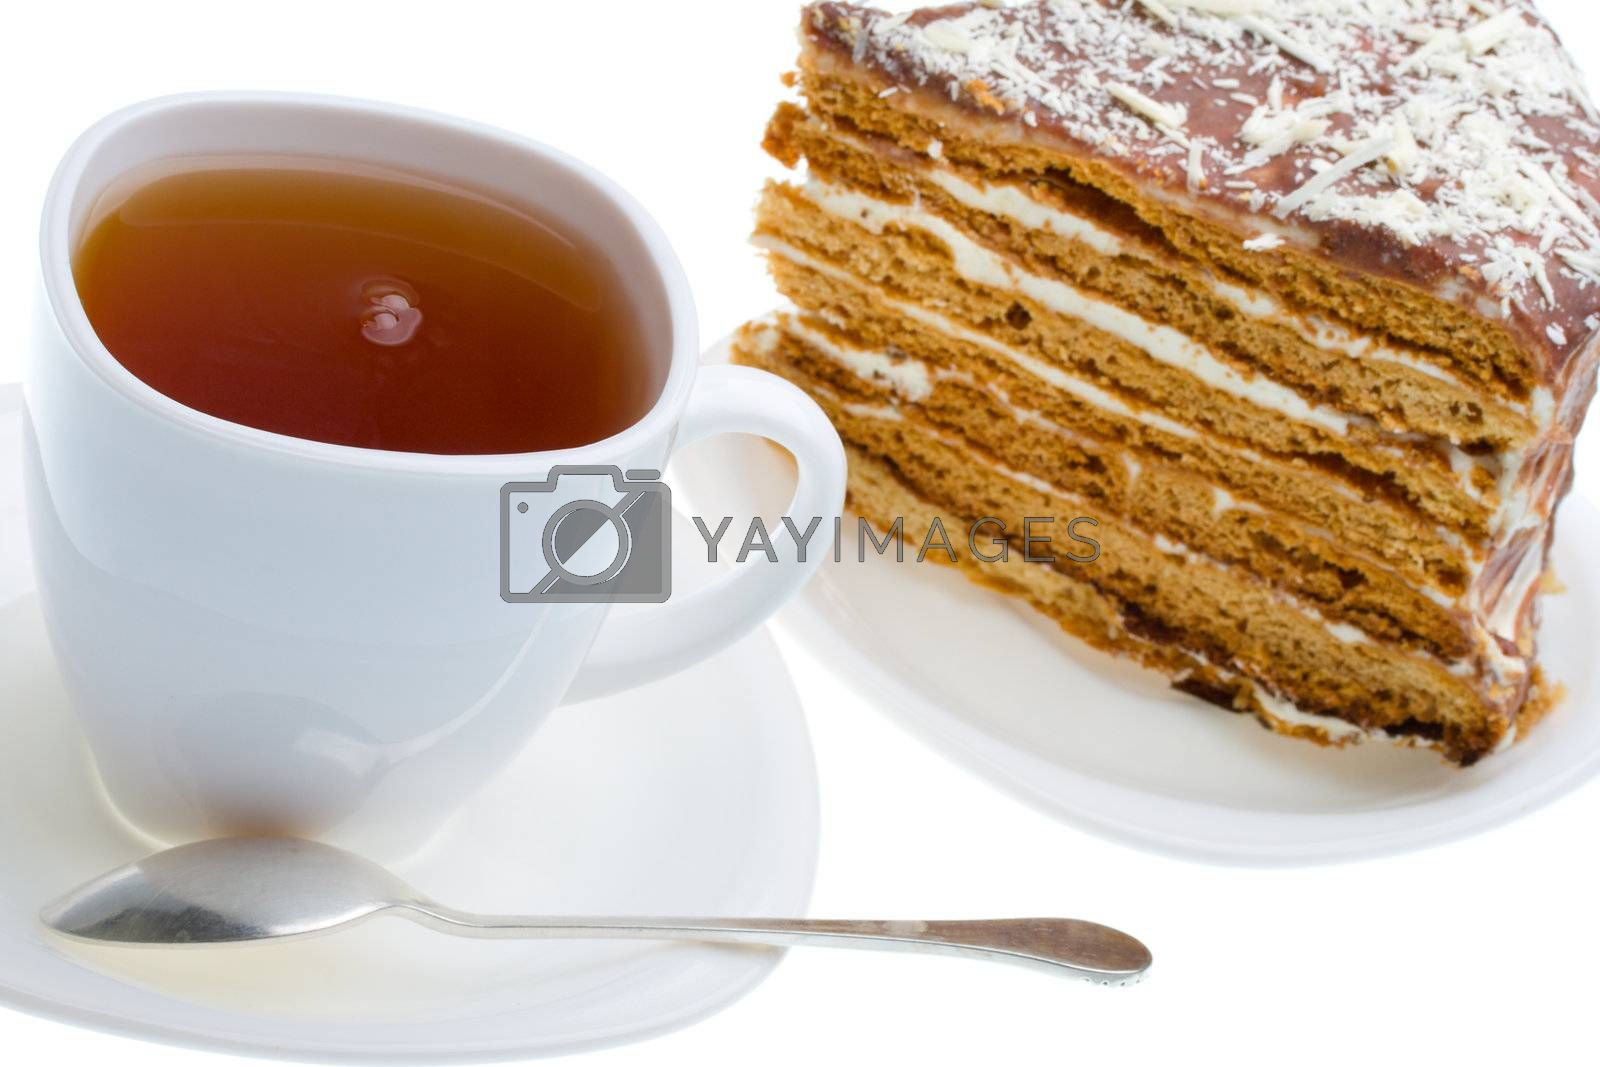 Royalty free image of tea cup and piece of honey cake by Alekcey